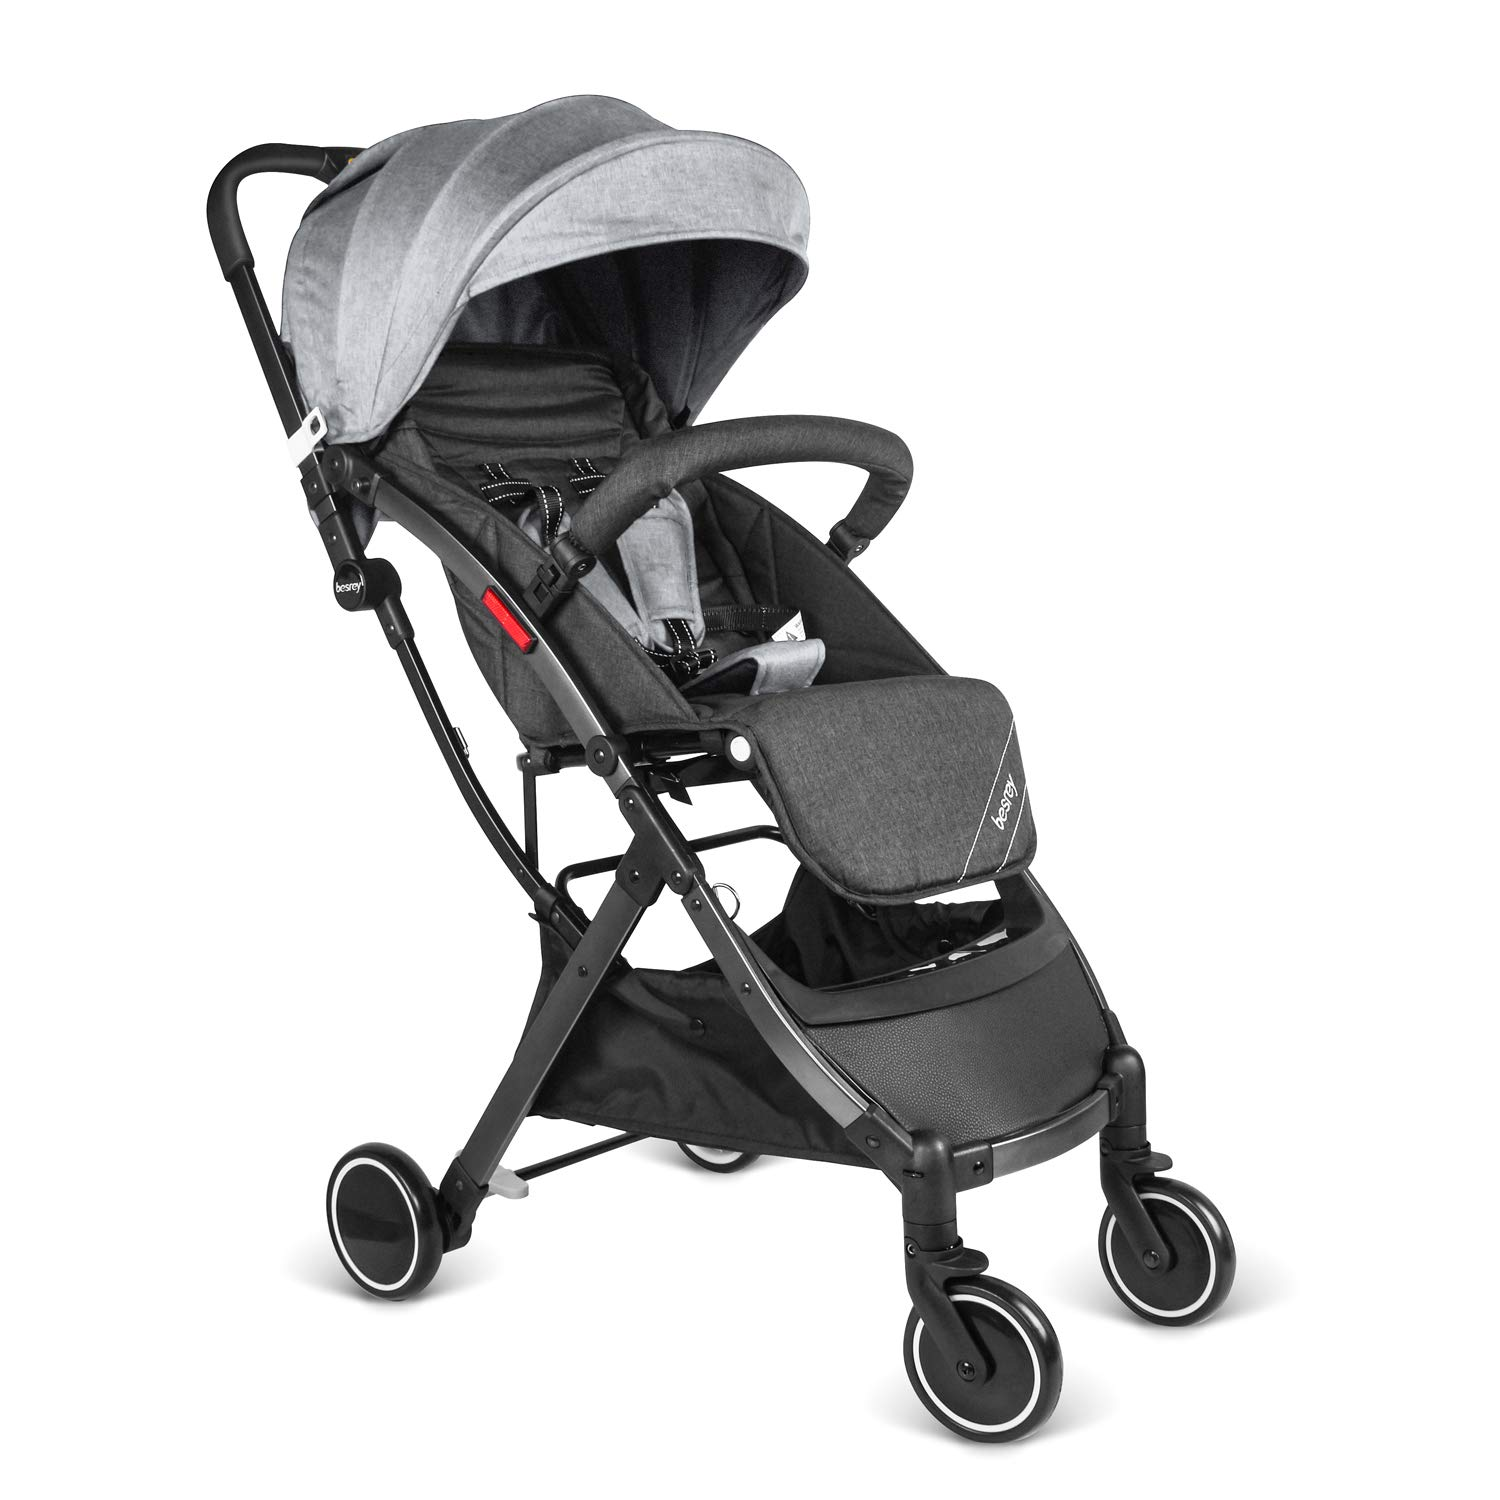 besrey Baby Lightweight Stroller Kids Pushchair with Pull Rod Easy get on Airplane Cabin - Gray